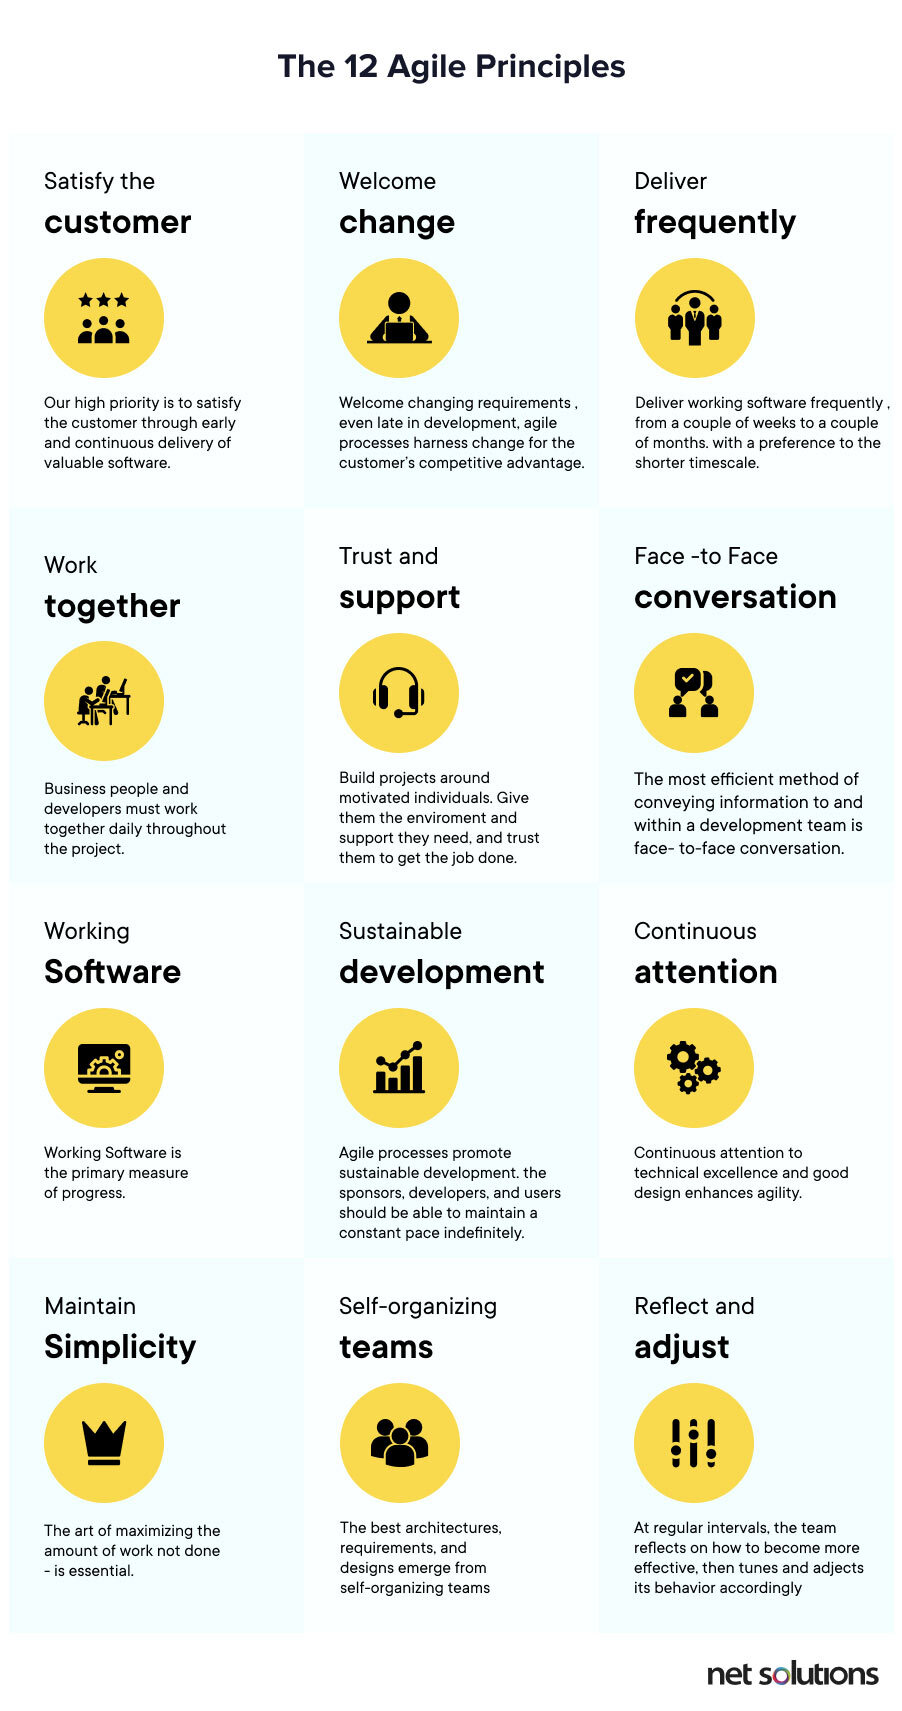 The 12 Agile principles as mentioned in the manifesto